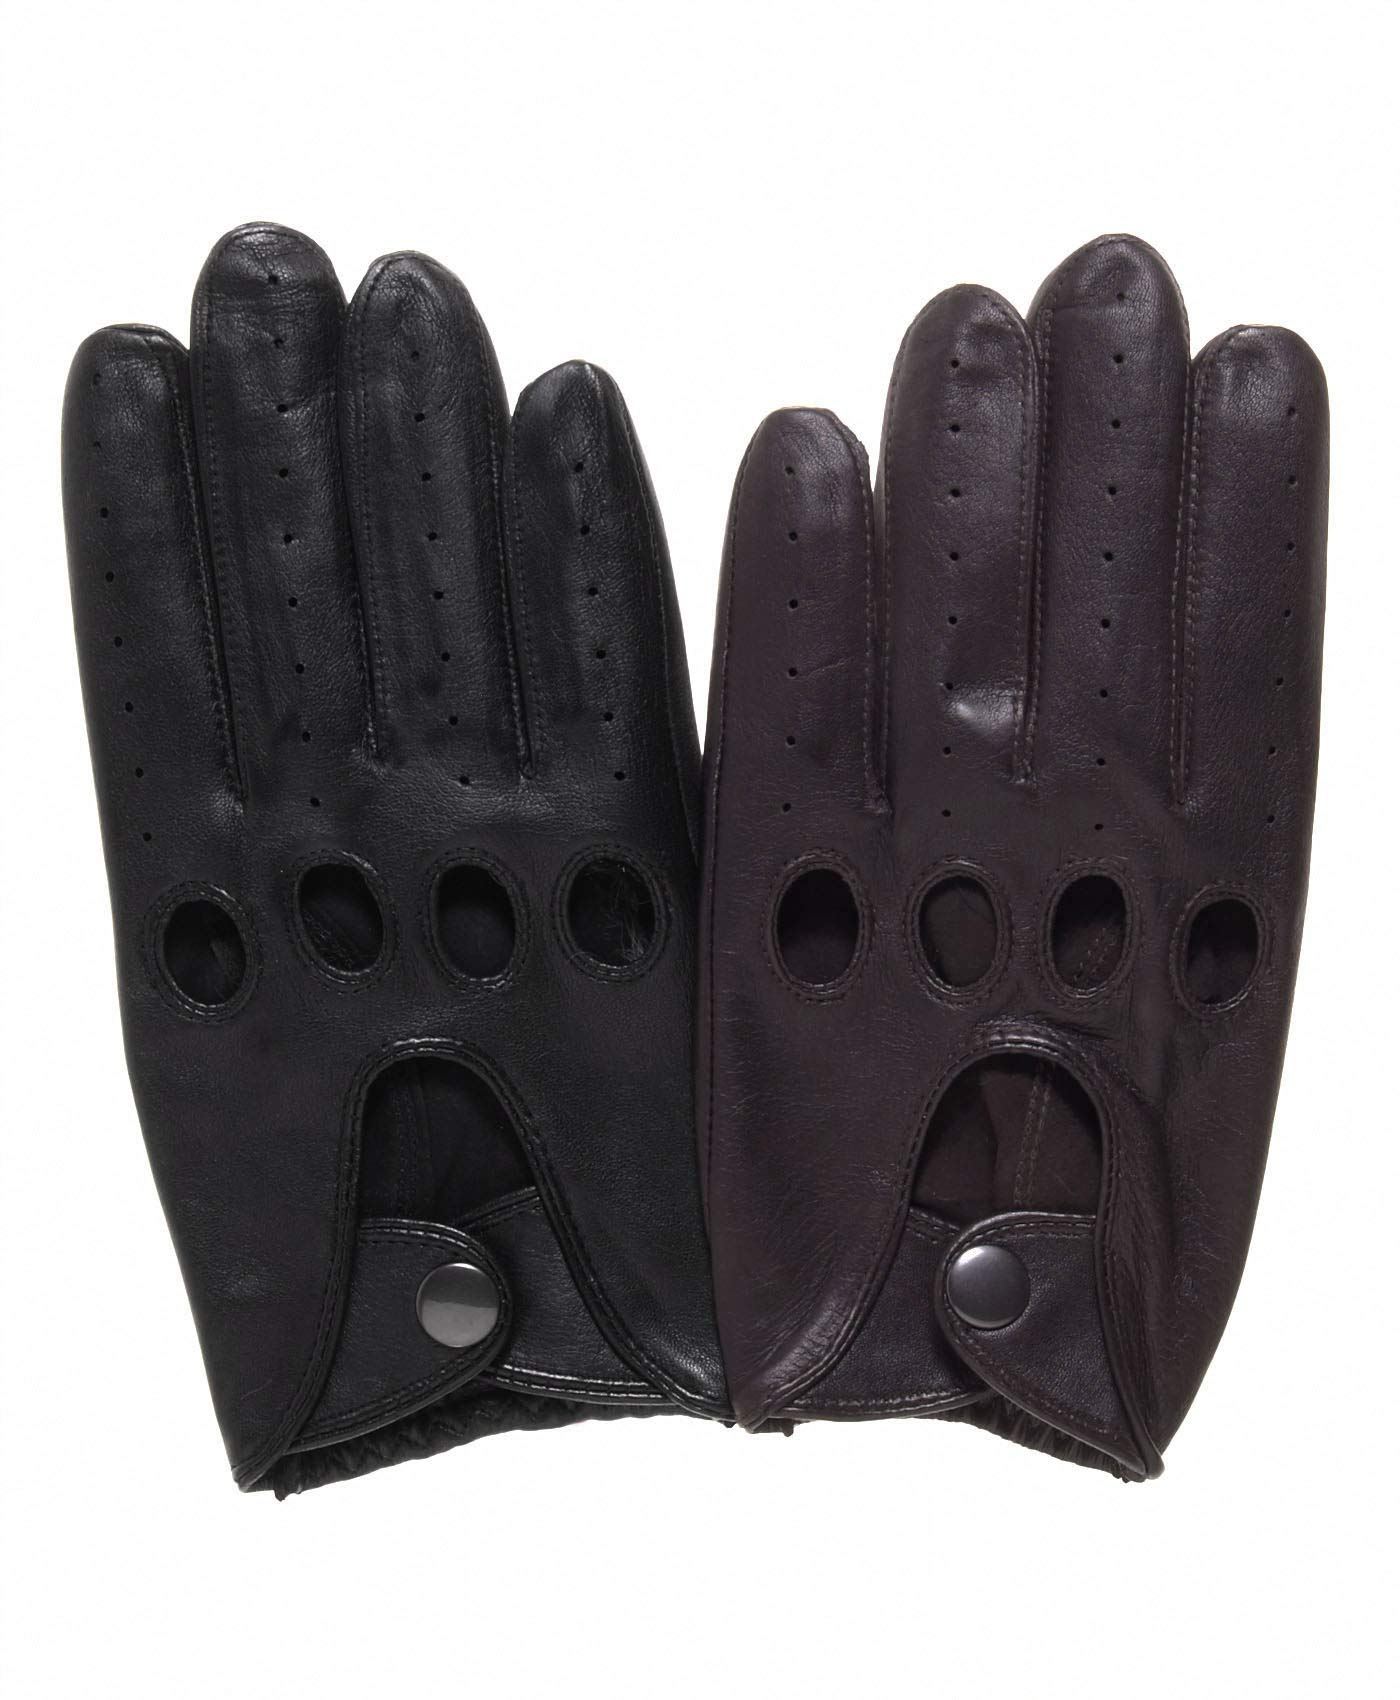 Pratt and Hart Traditional Leather Driving Gloves Size XL Color Black